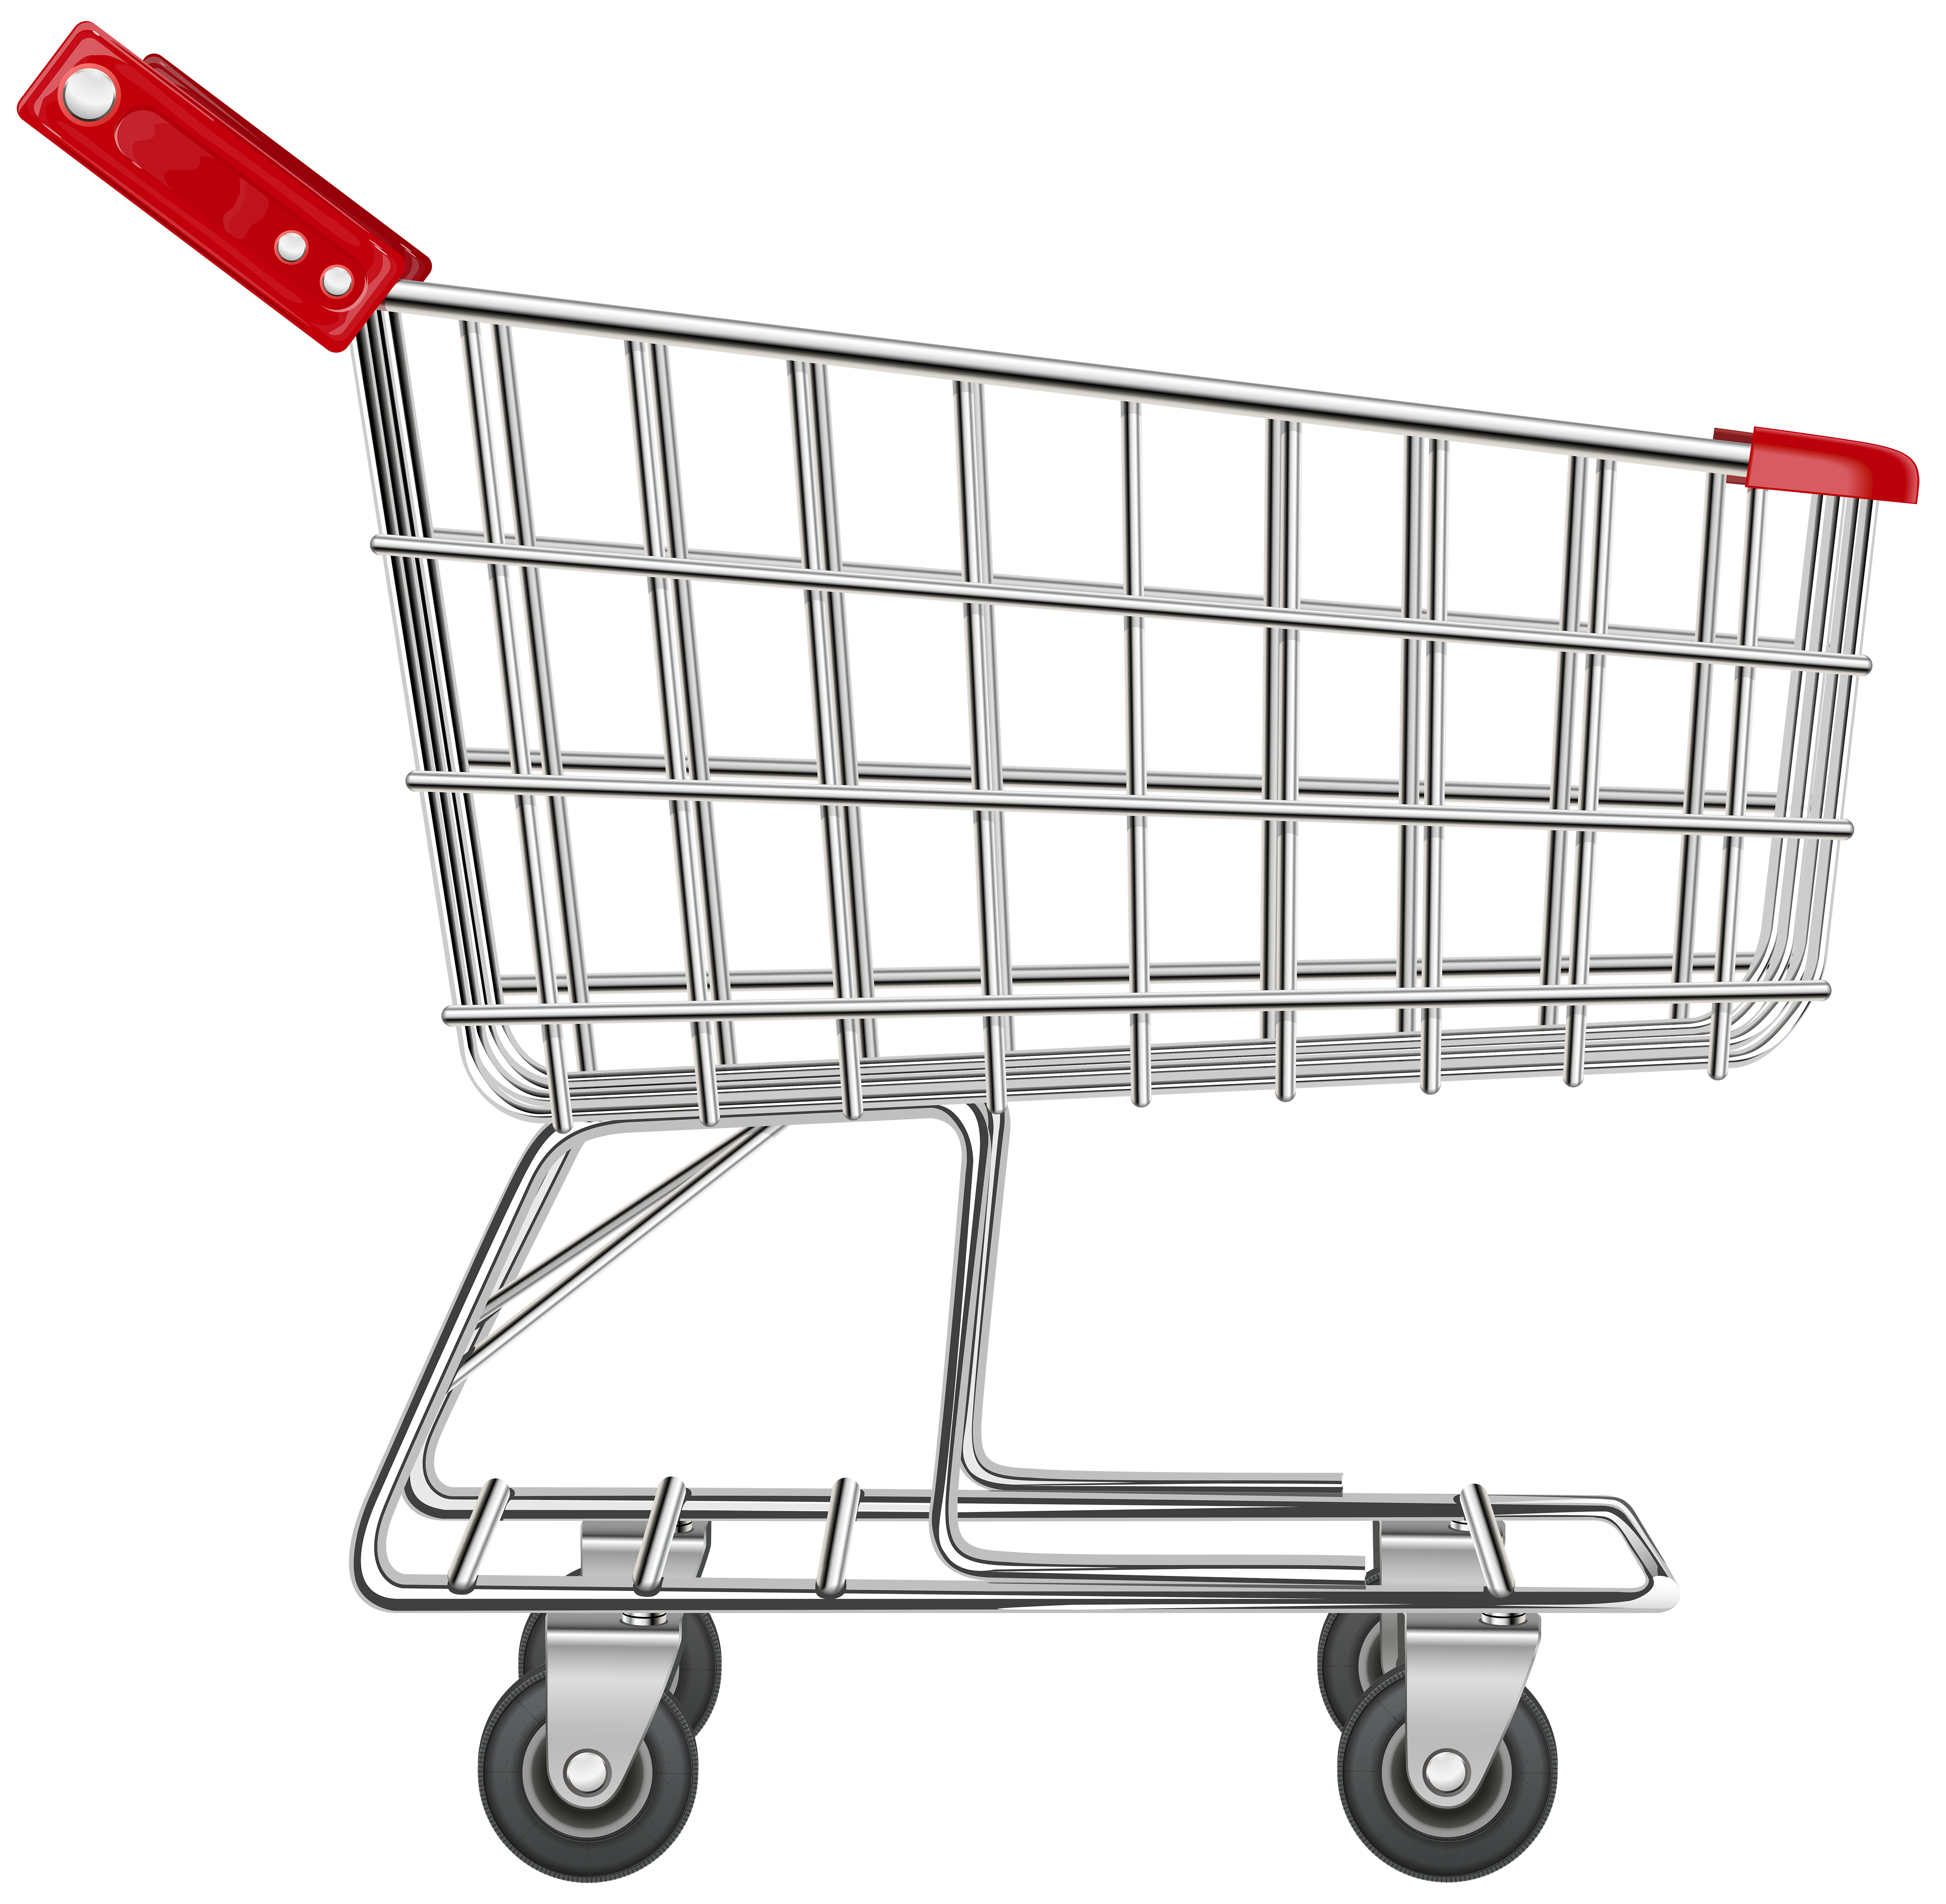 Carriage clipart transparent background. Shopping cart png image